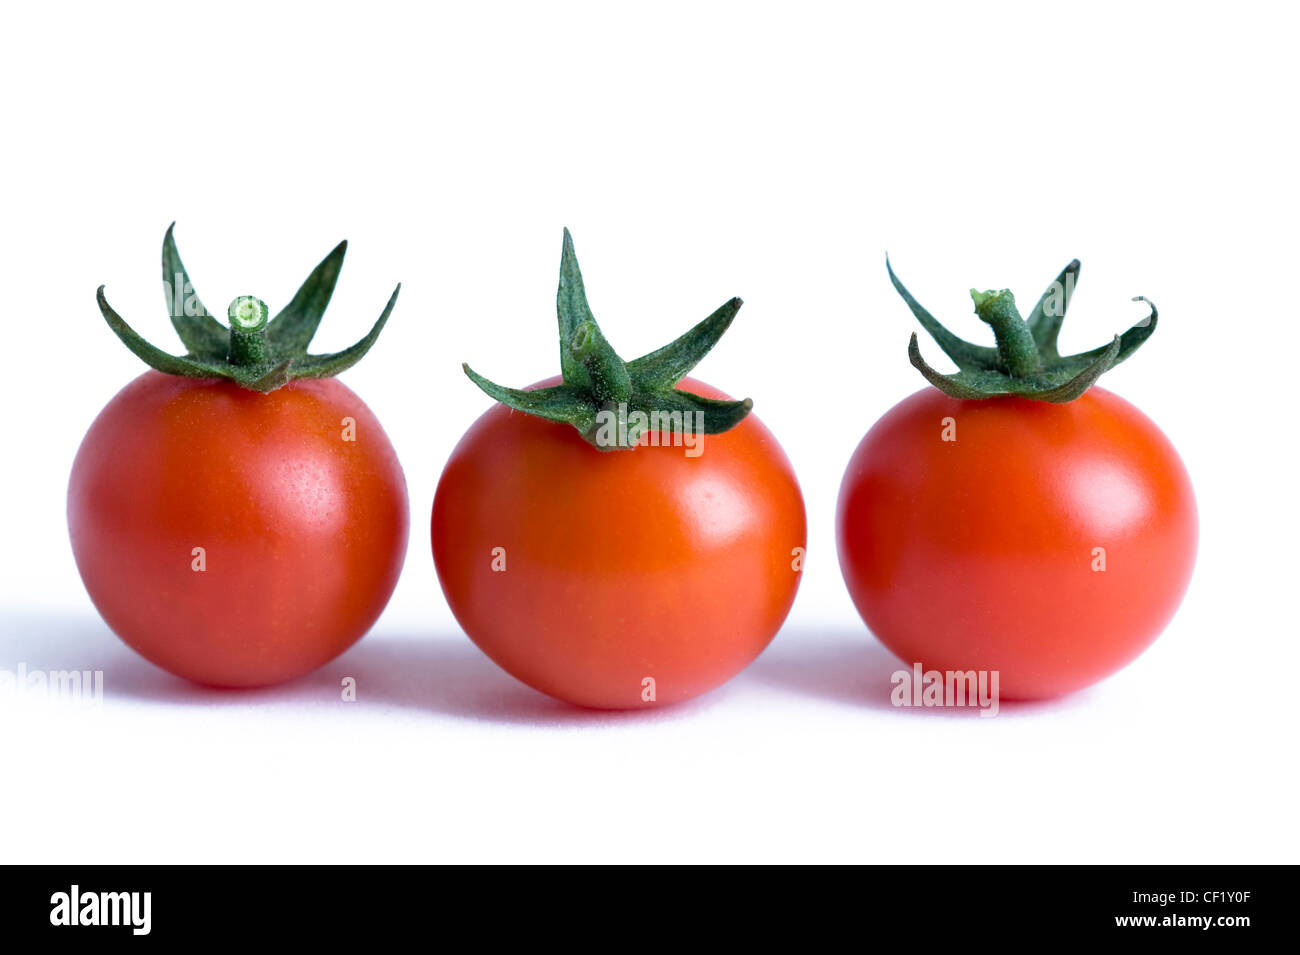 three cherry tomatoes isolated on a white background - Stock Image